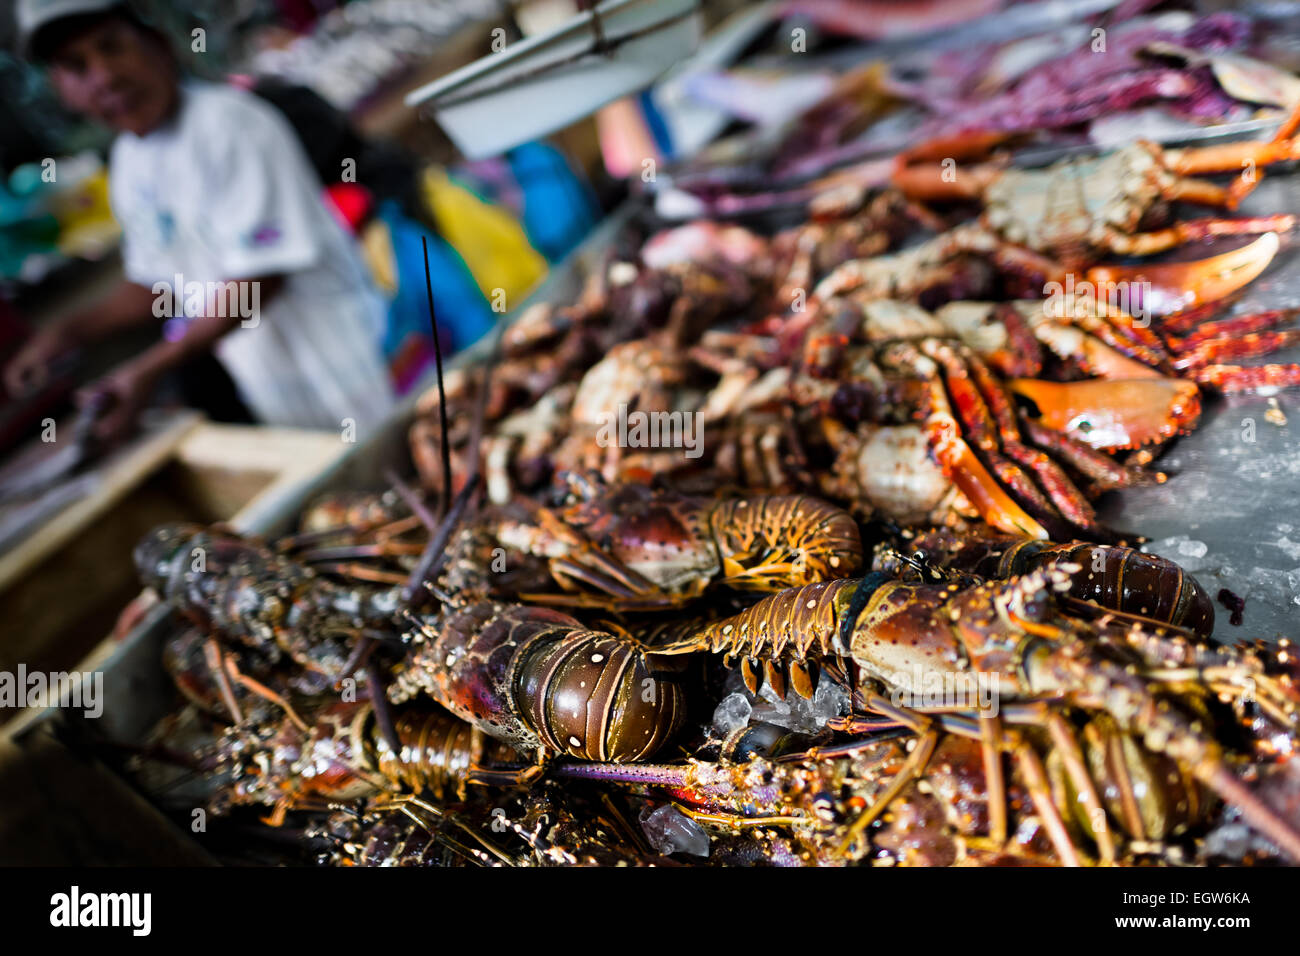 Fresh lobsters and crabs for sale are seen at Mercado de Mariscos seafood and fish market in Panama City, Panama. Stock Photo